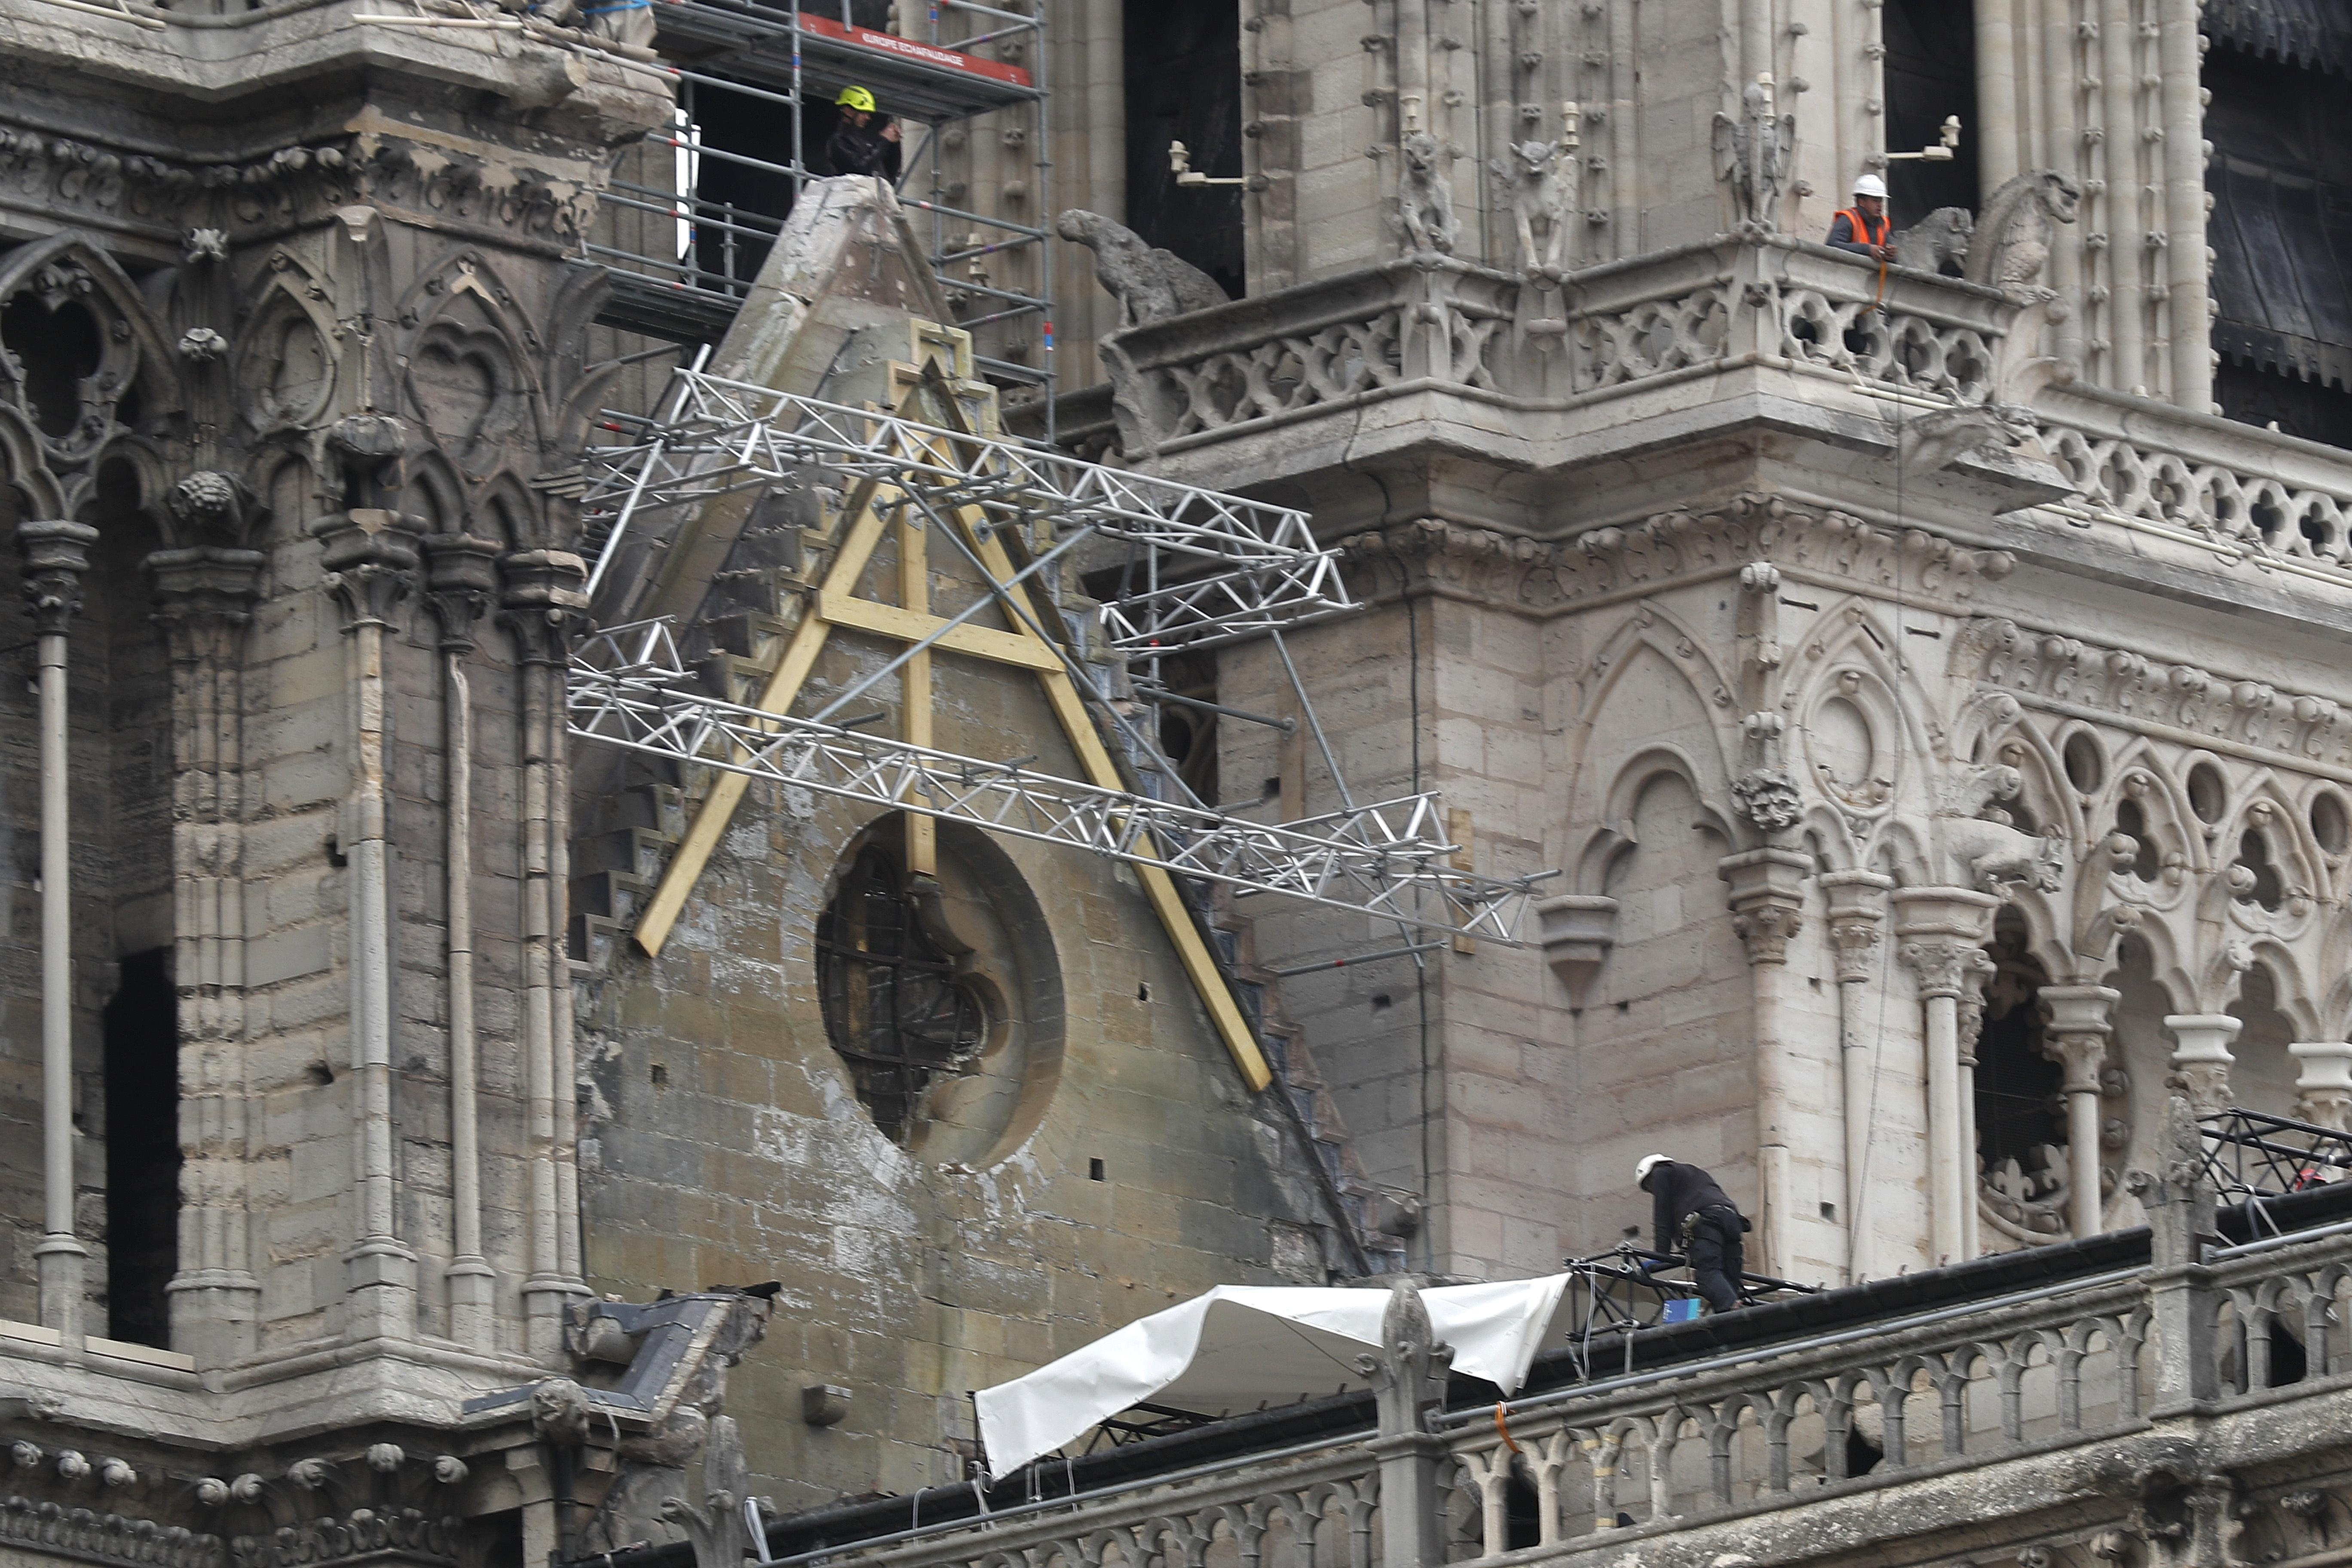 Mountain climbers install waterproof tarps to protect gutted Notre Dame